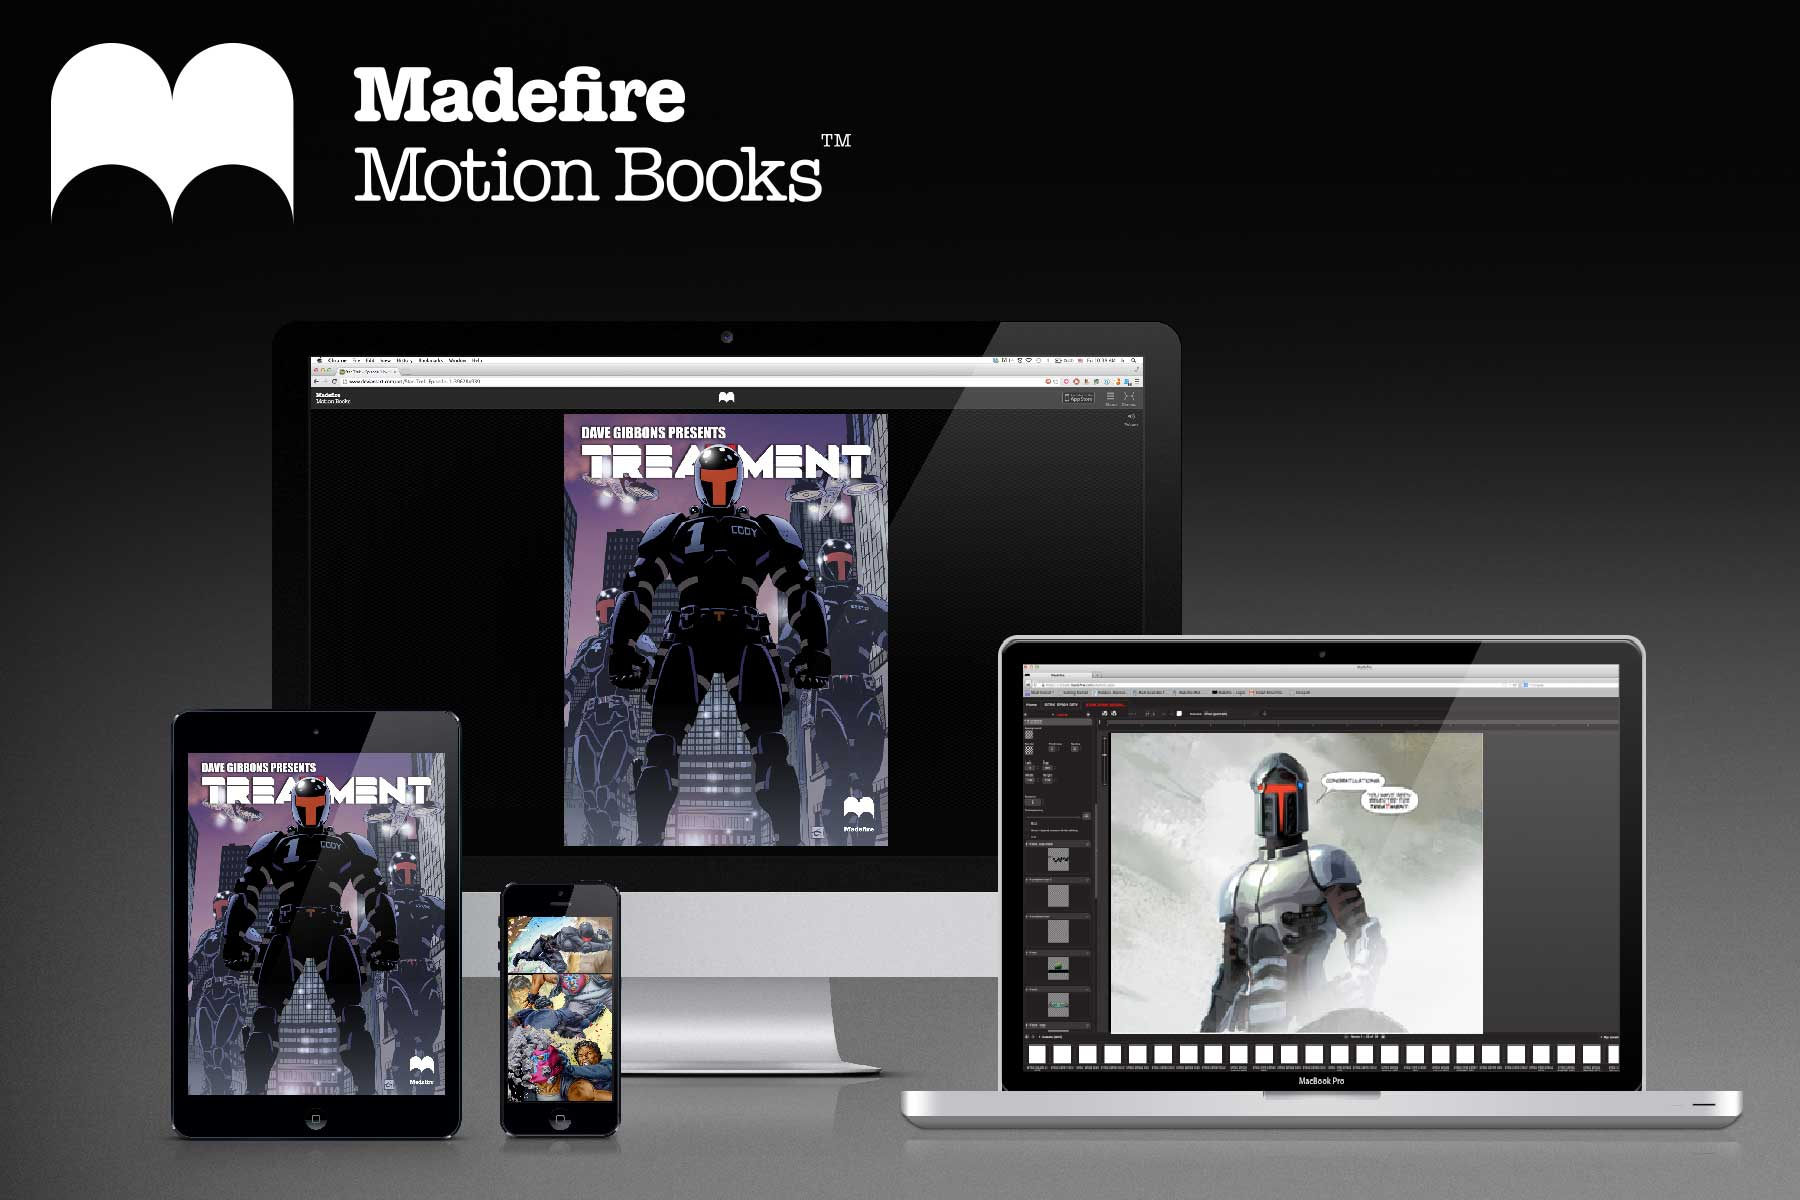 Madefire Motion Books